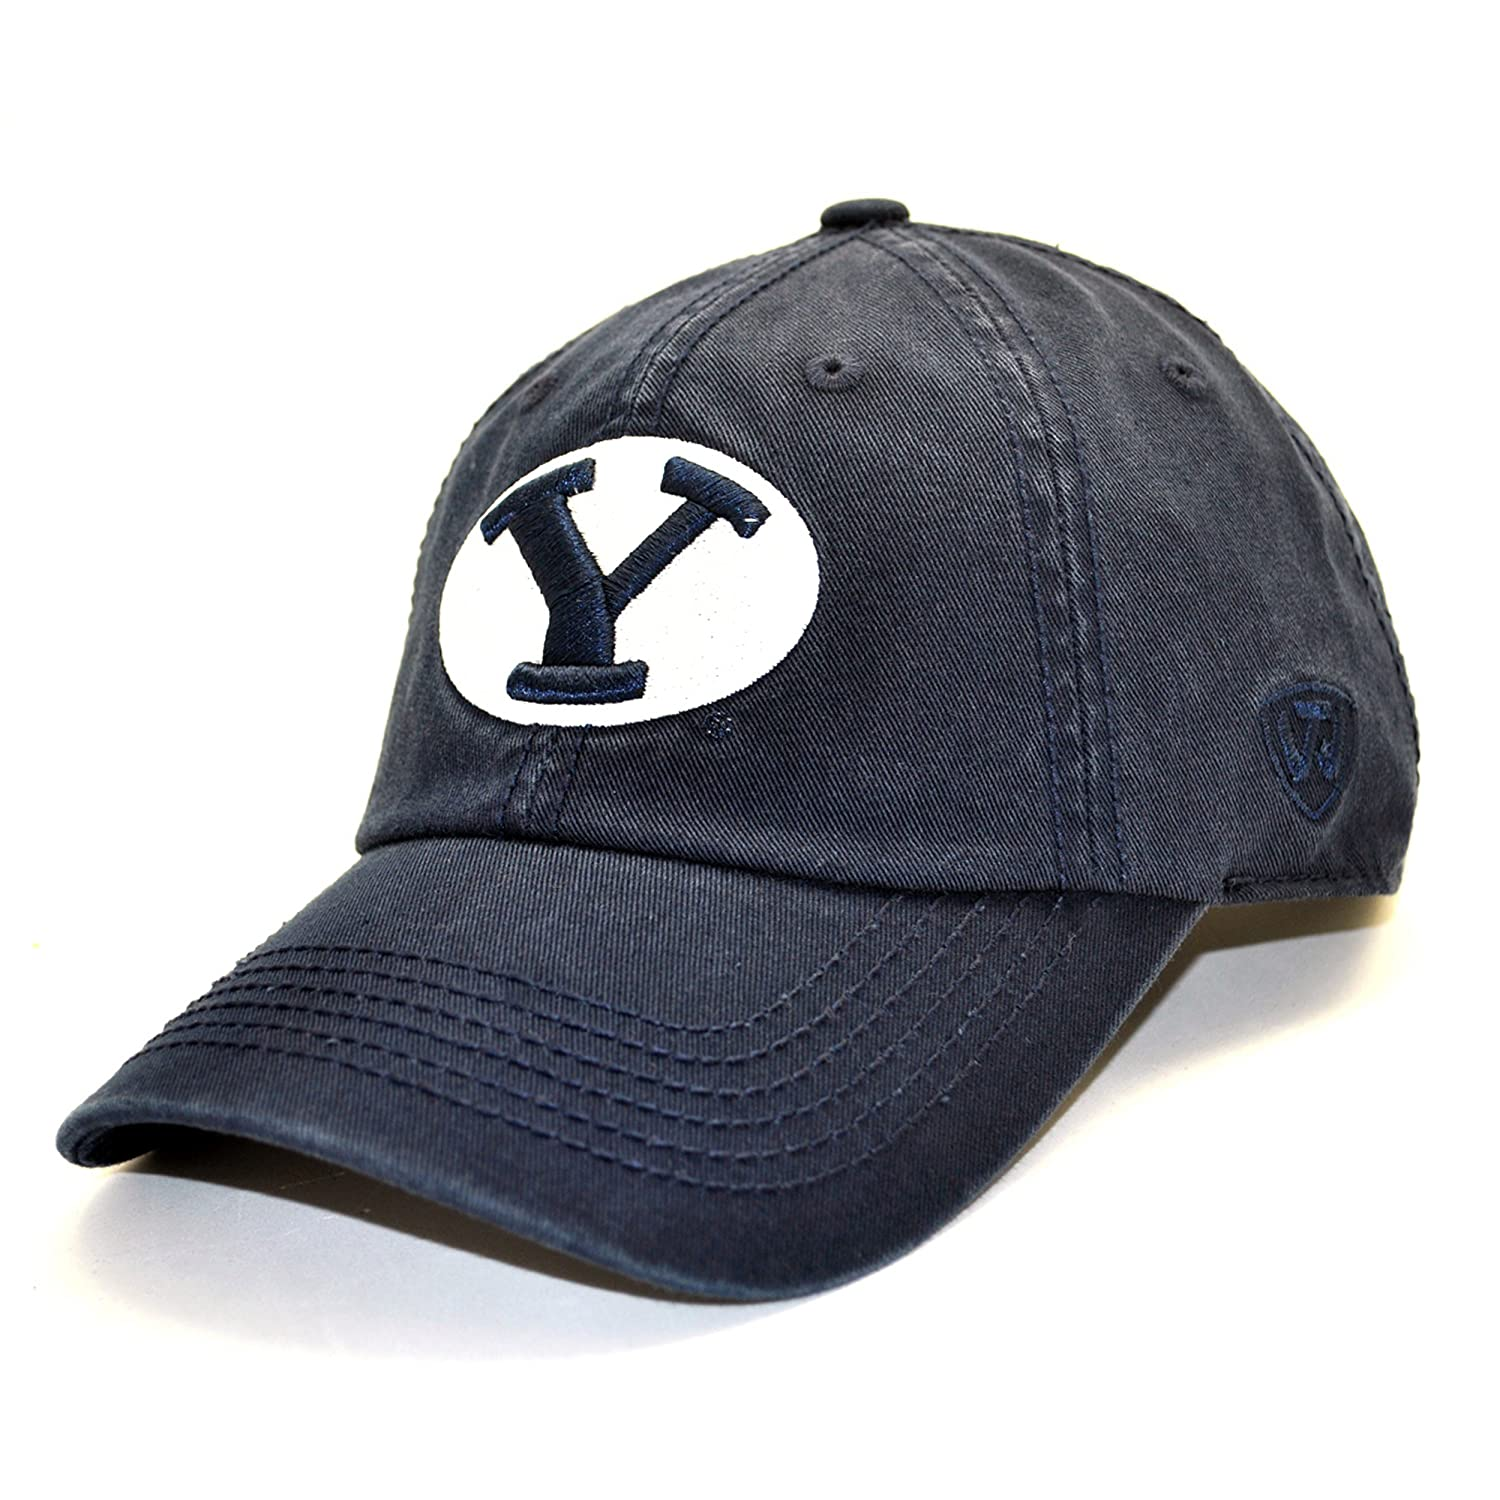 Amazon.com   BYU Cougars Crew Hat   Baseball Caps   Sports   Outdoors 0dc1190ac02